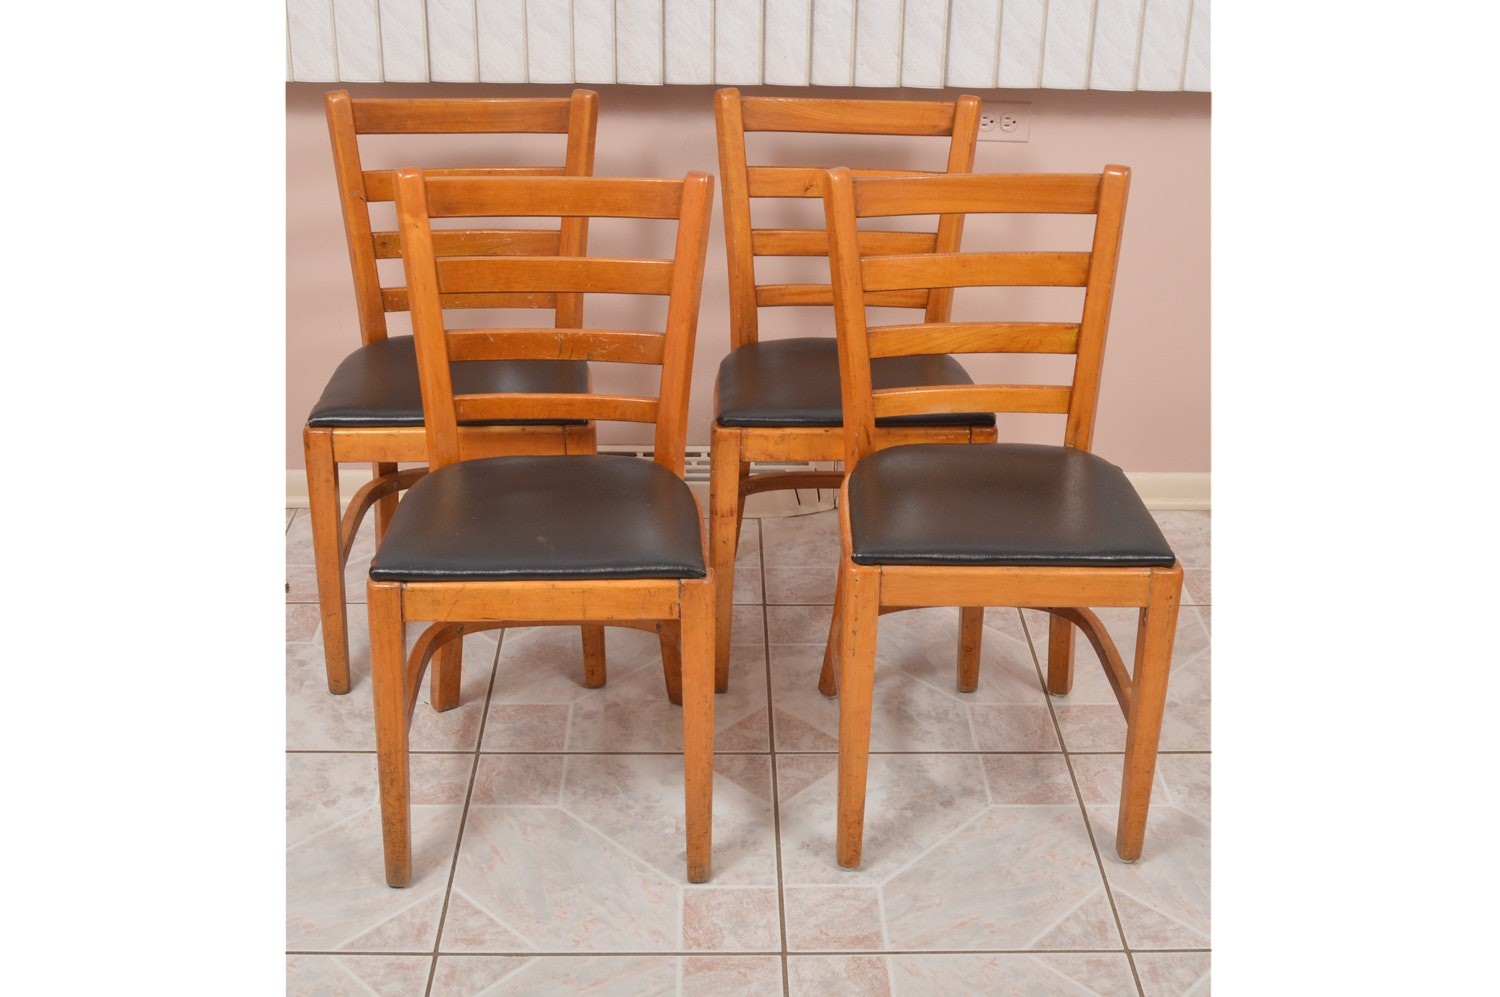 Vintage Ladderback Chairs by The Buckstaff Company